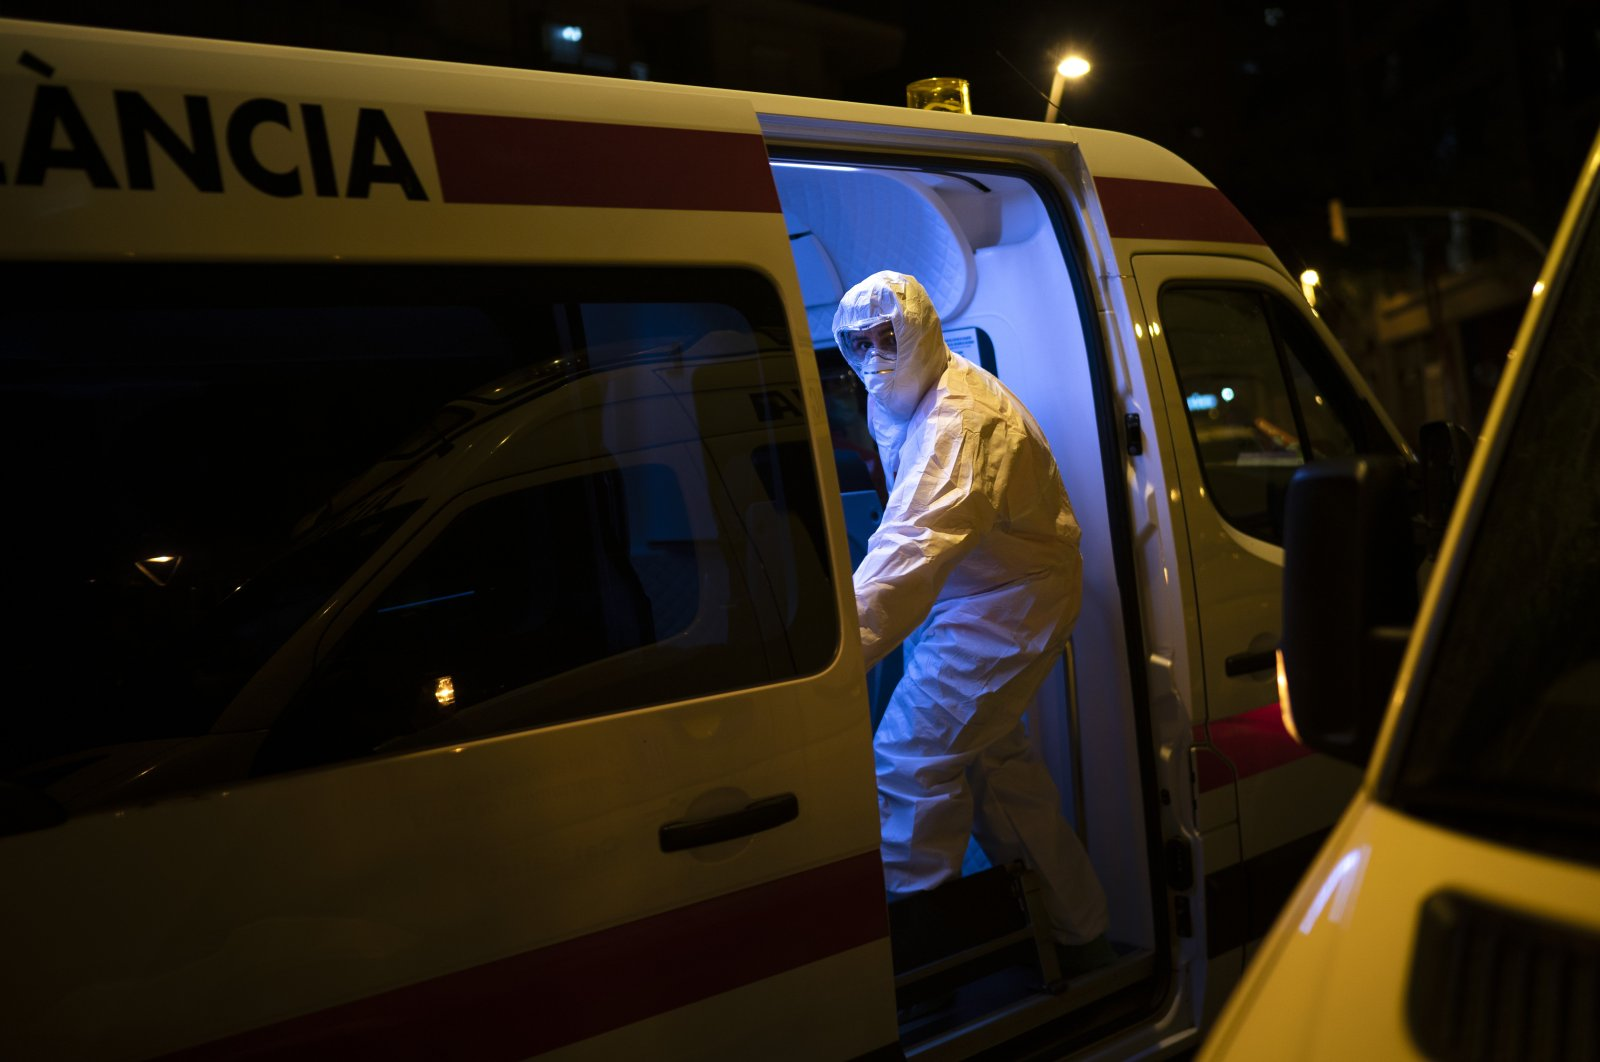 An emergency worker wearing a protective suit closes the door of an ambulance transferring a COVID-19 patient in Barcelona, Spain, Friday, March 27, 2020. (AP Photo)